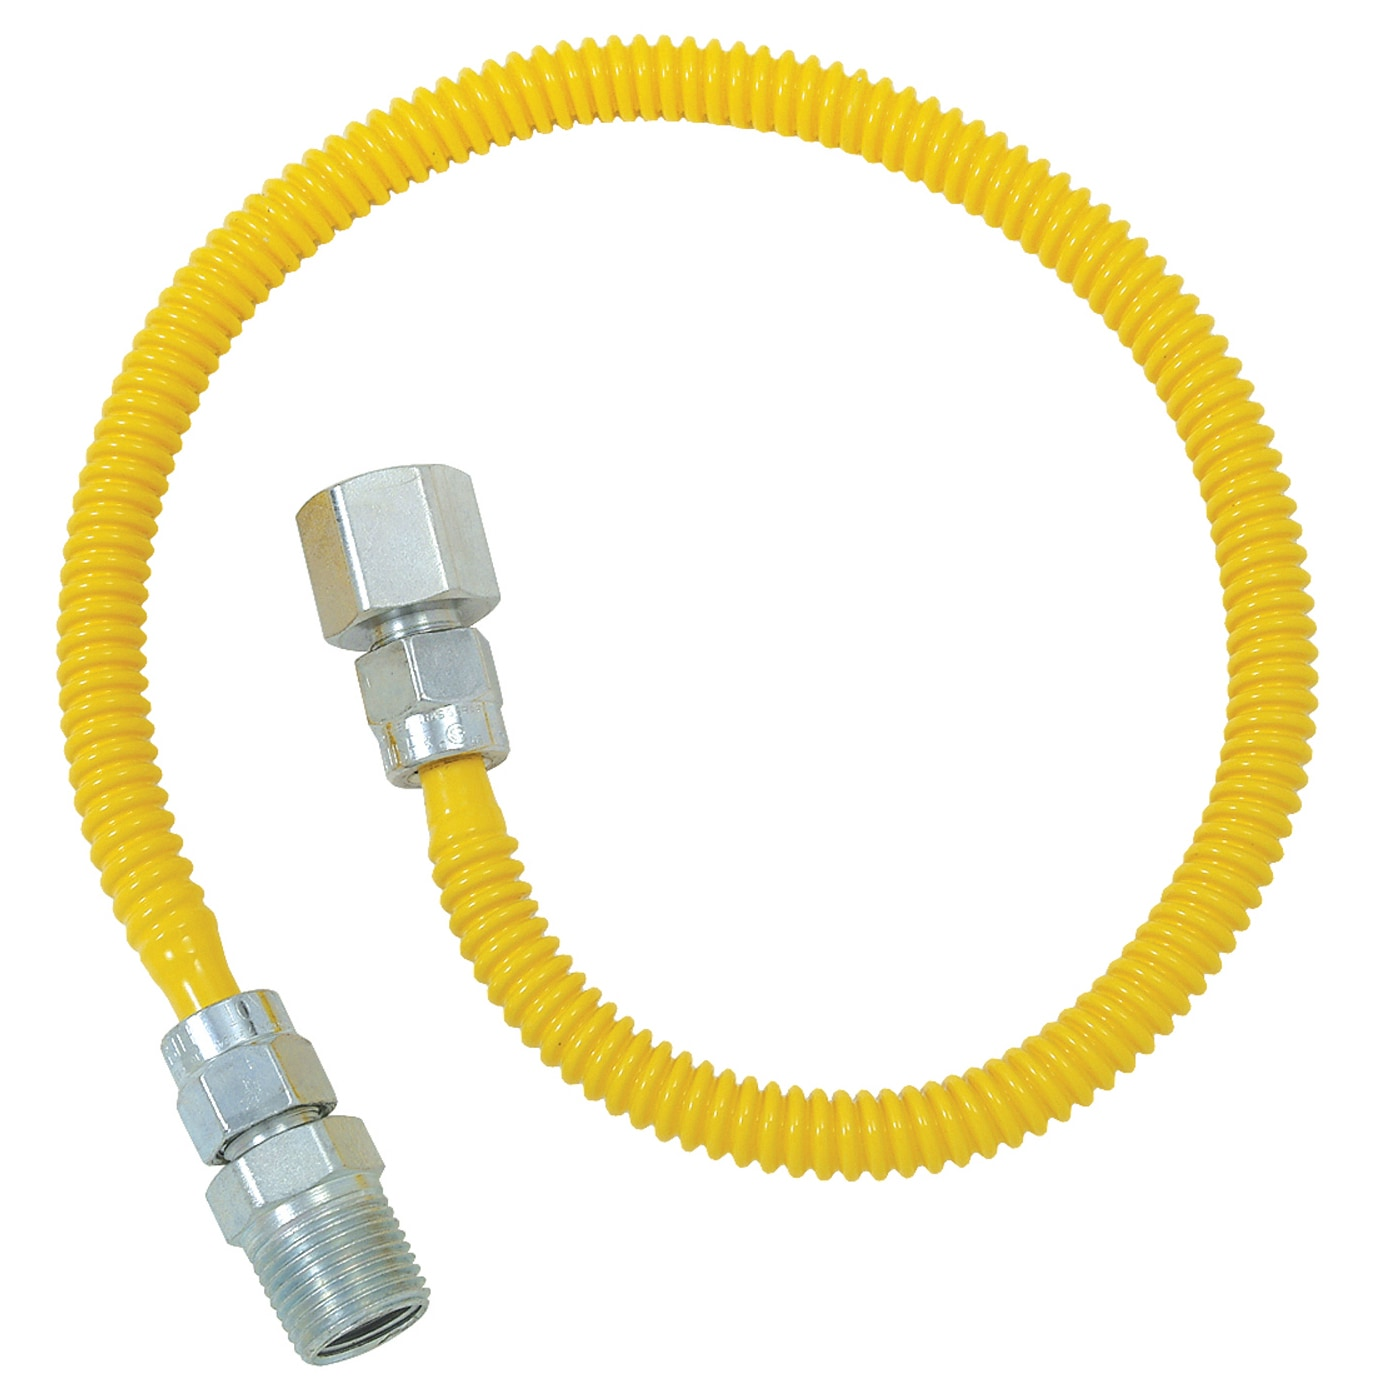 Gardus The LintEater Dryer Vent Cleaning Kit RLE202 (Clea...